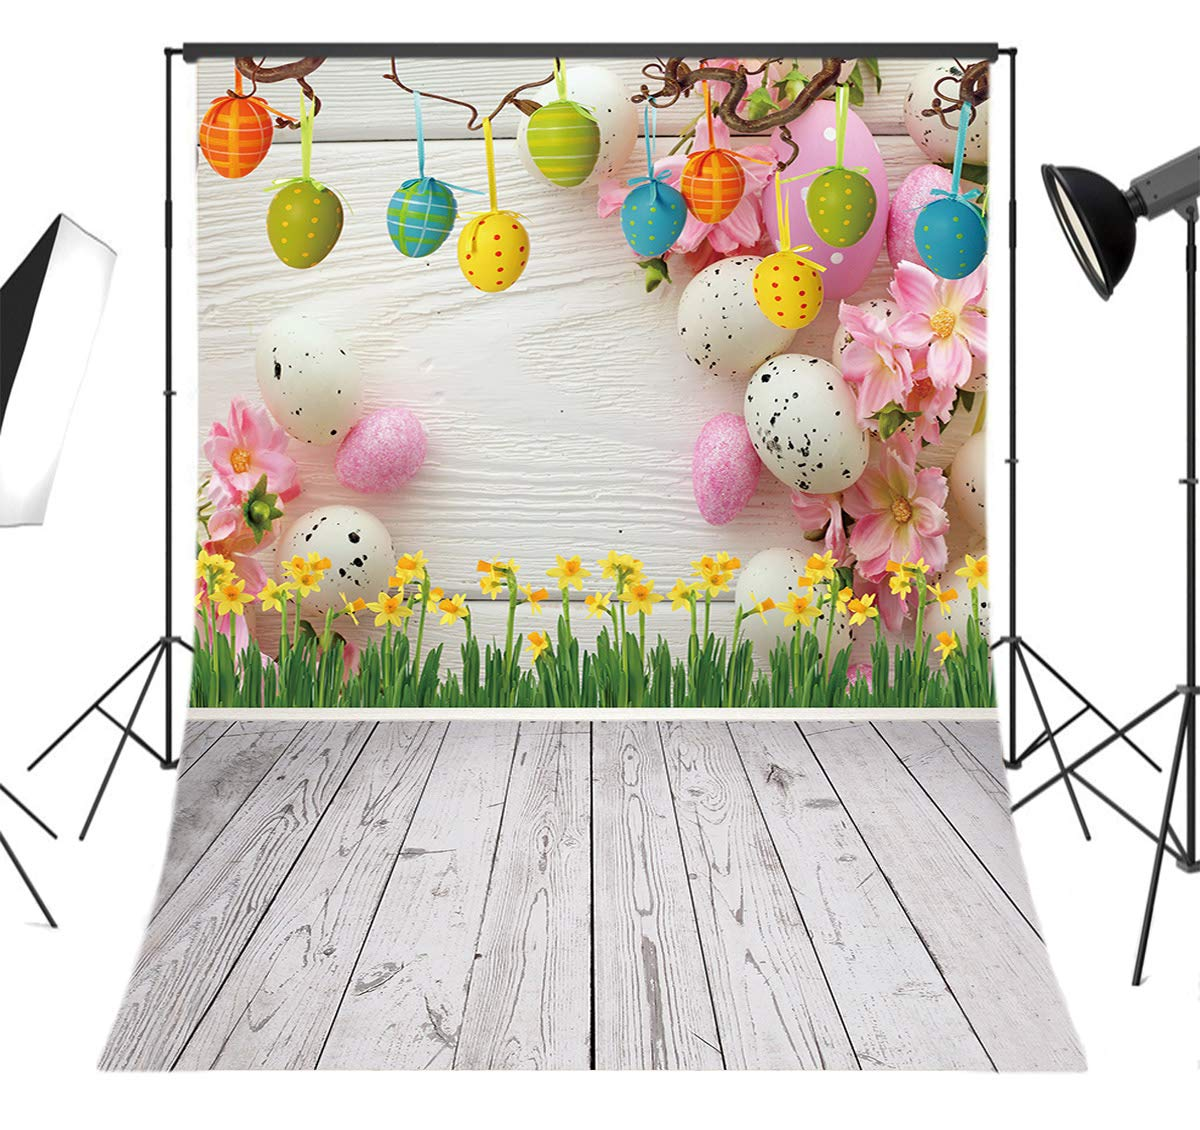 LB Spring Easter Backdrop for Photography 5x7ft Vinyl Yellow Flowers Eggs Wood Floor Background for Children Kids Adult Portraits Photo Backdrop Studio Props